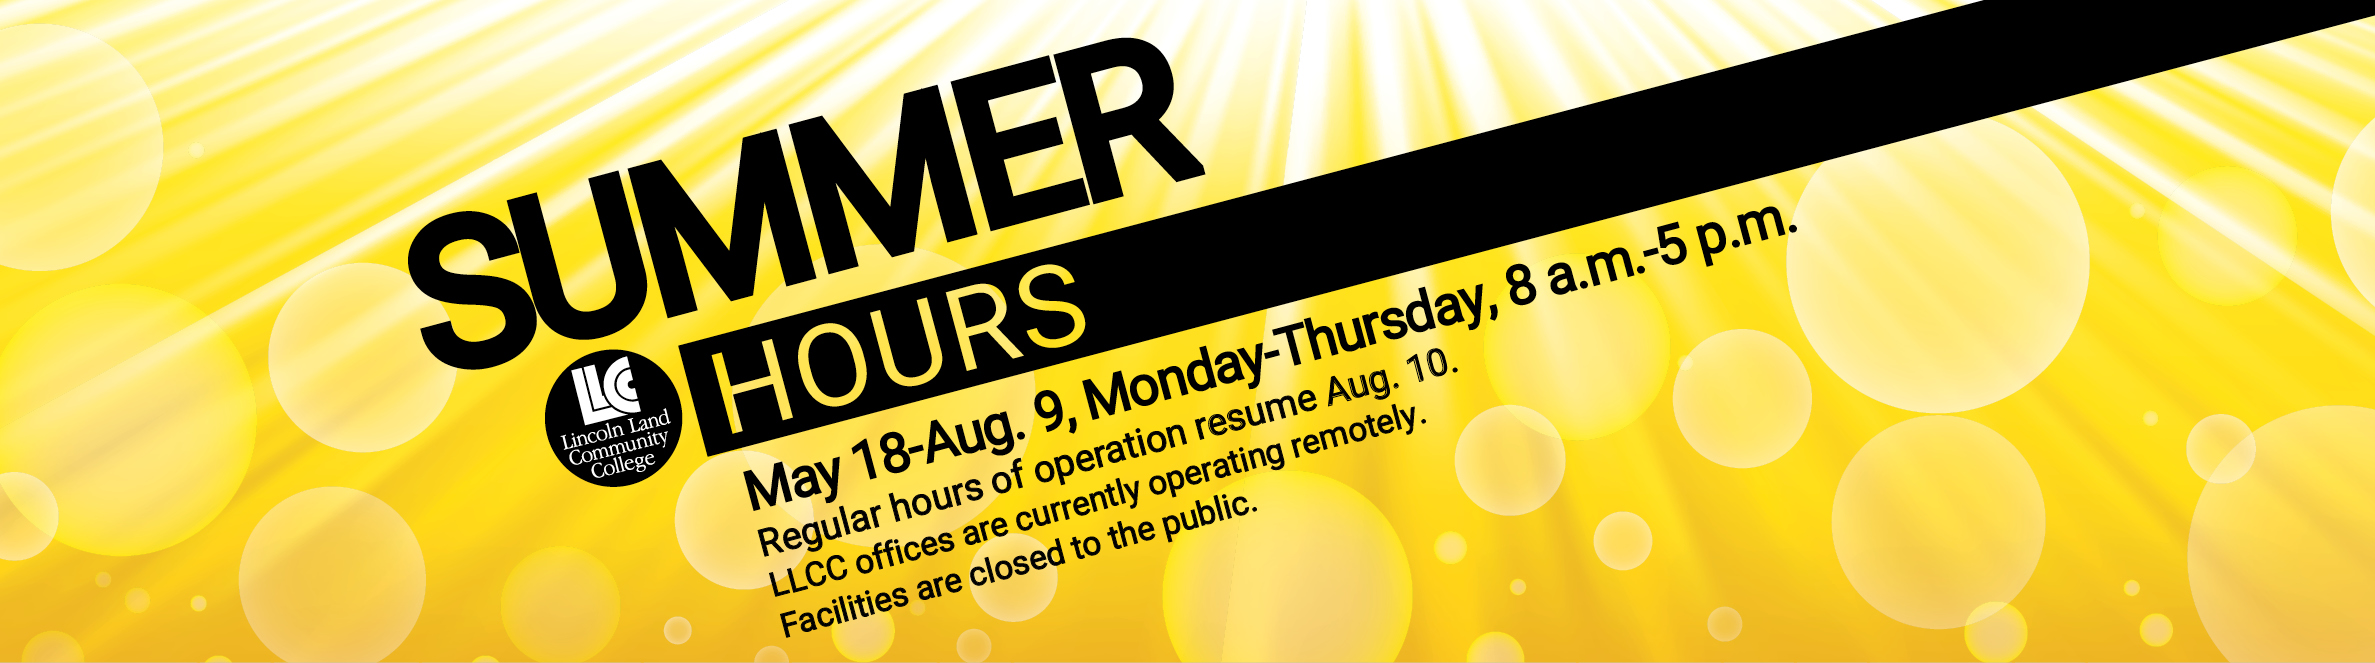 LLCC Lincoln Land Community College Summer Hours: May 18-Aug. 9, Monday-Thursday, 8 a.m.-5 p.m. Regular hours of operation resume Aug. 10. LLCC offices are currently operating remotely. Facilities are closed to the public.